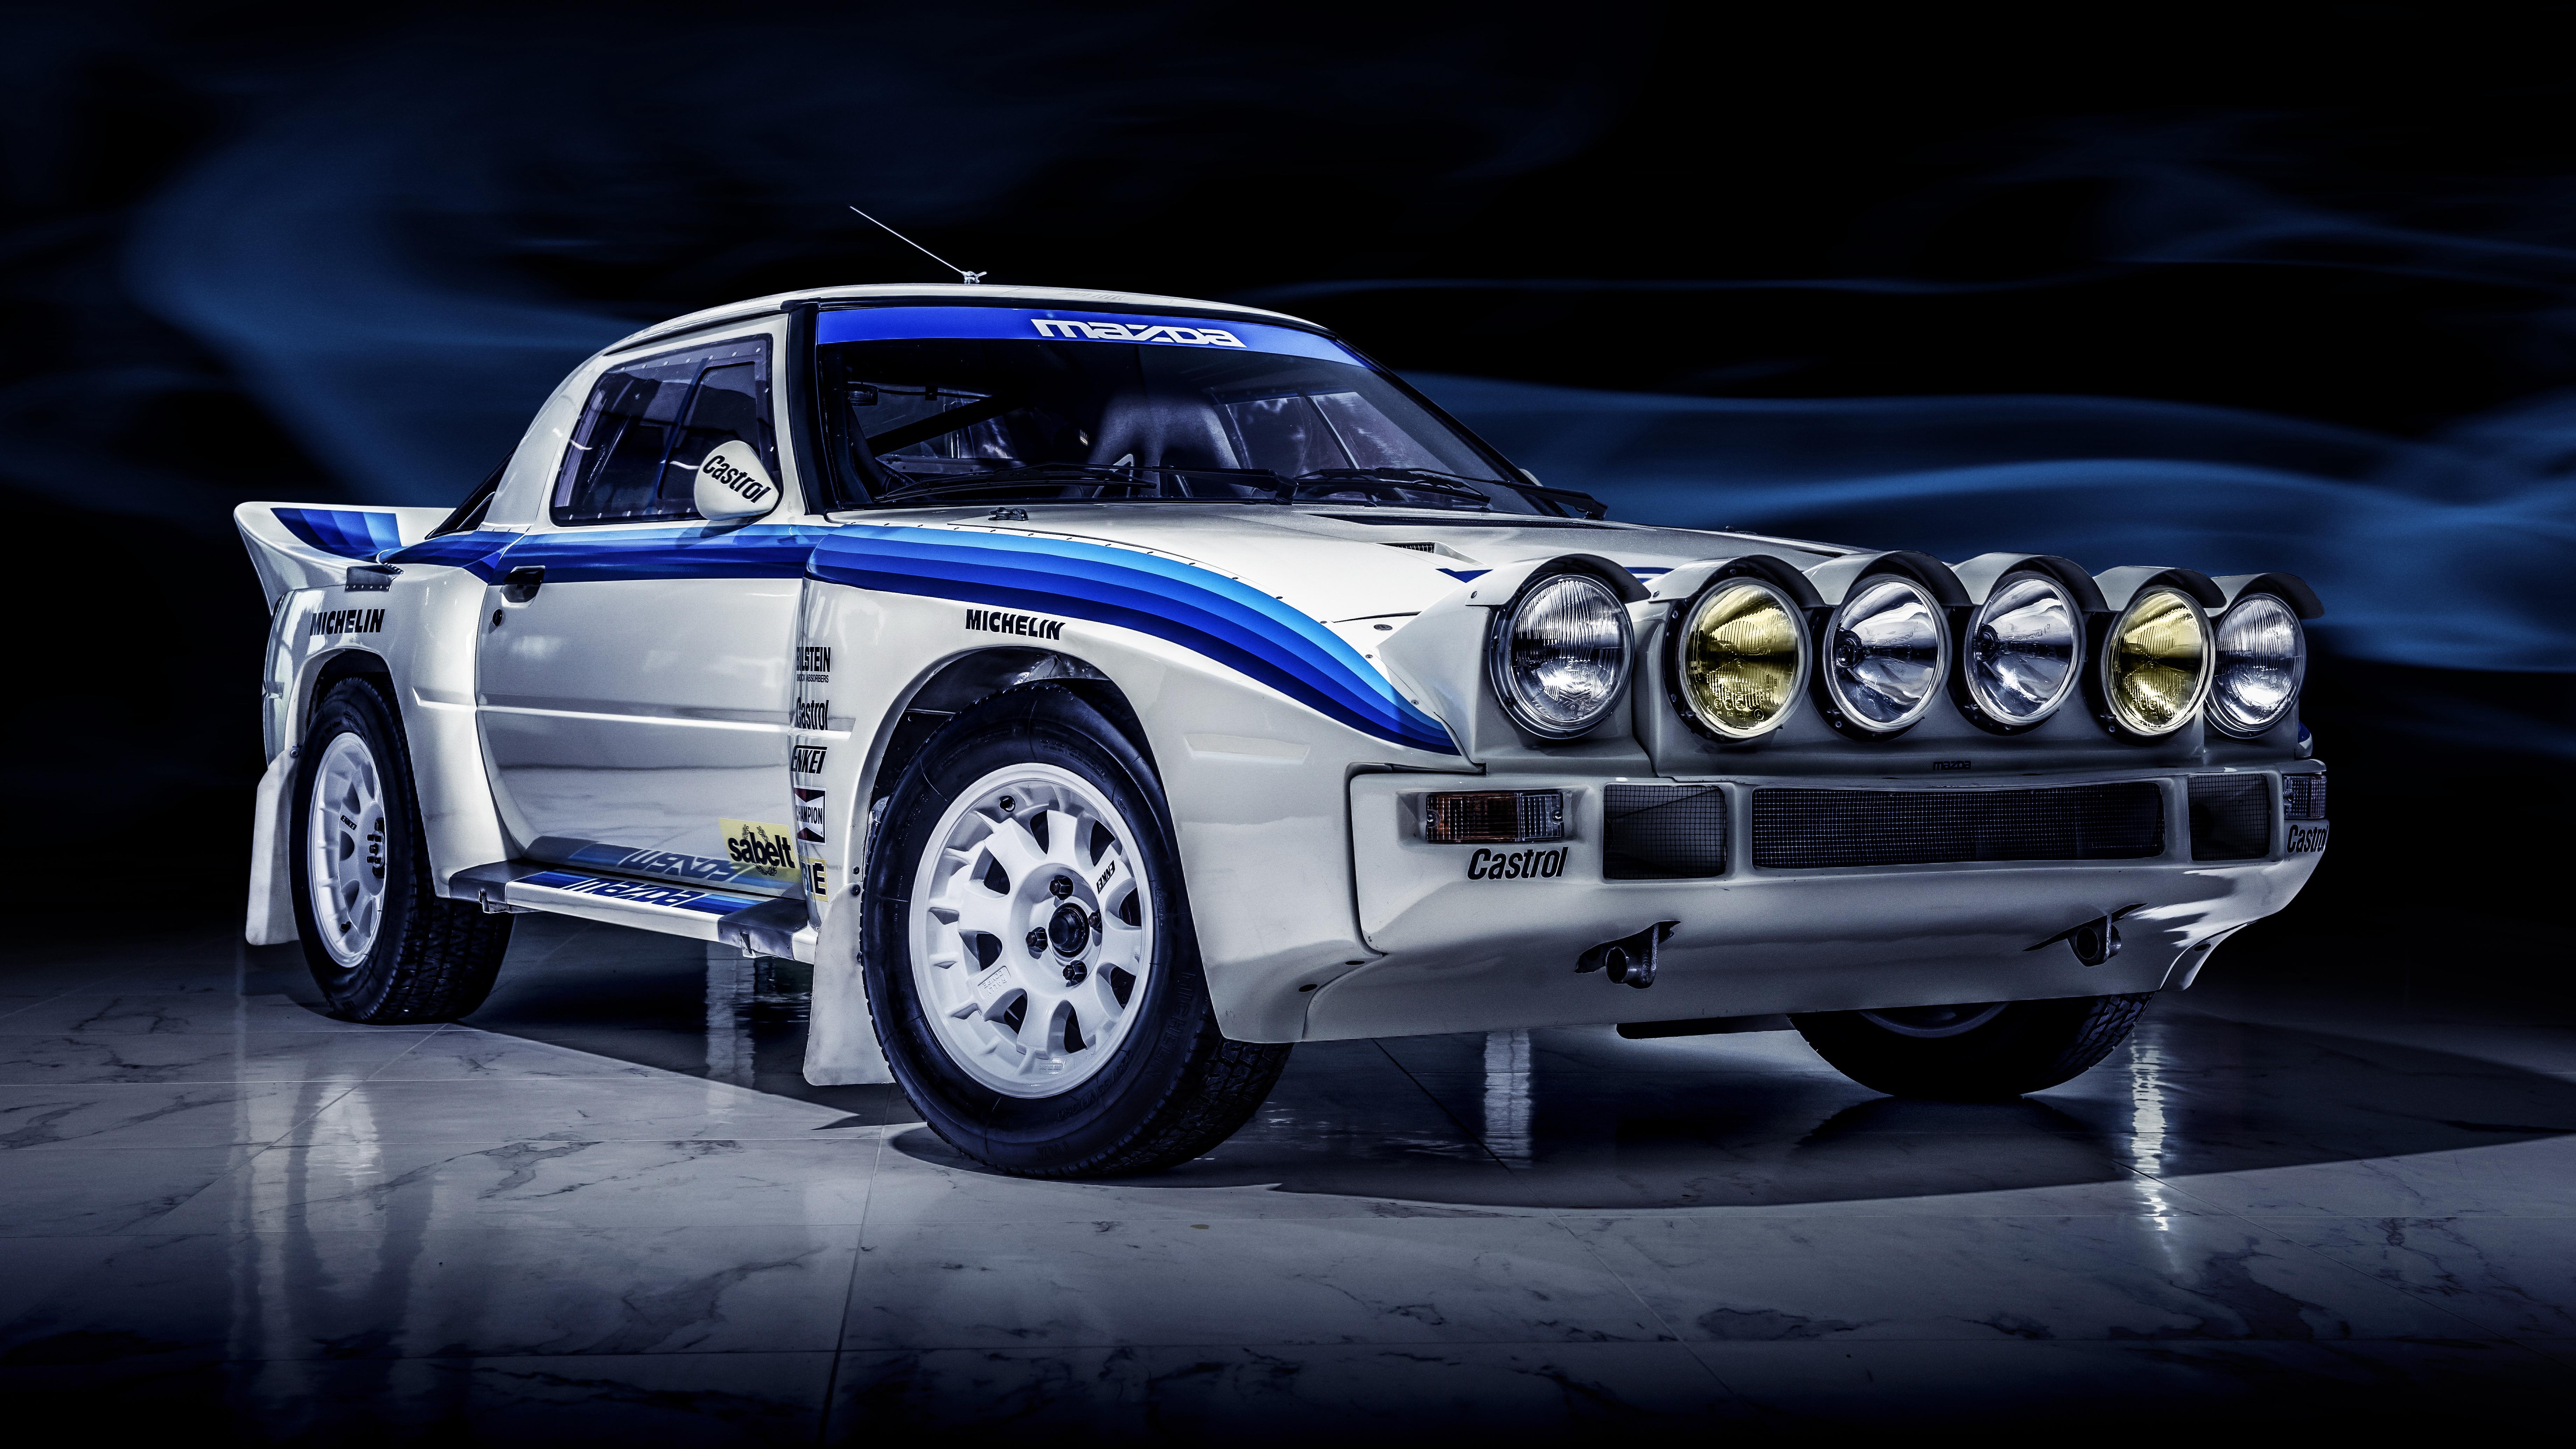 Mazda RX-7 Group B rally car front